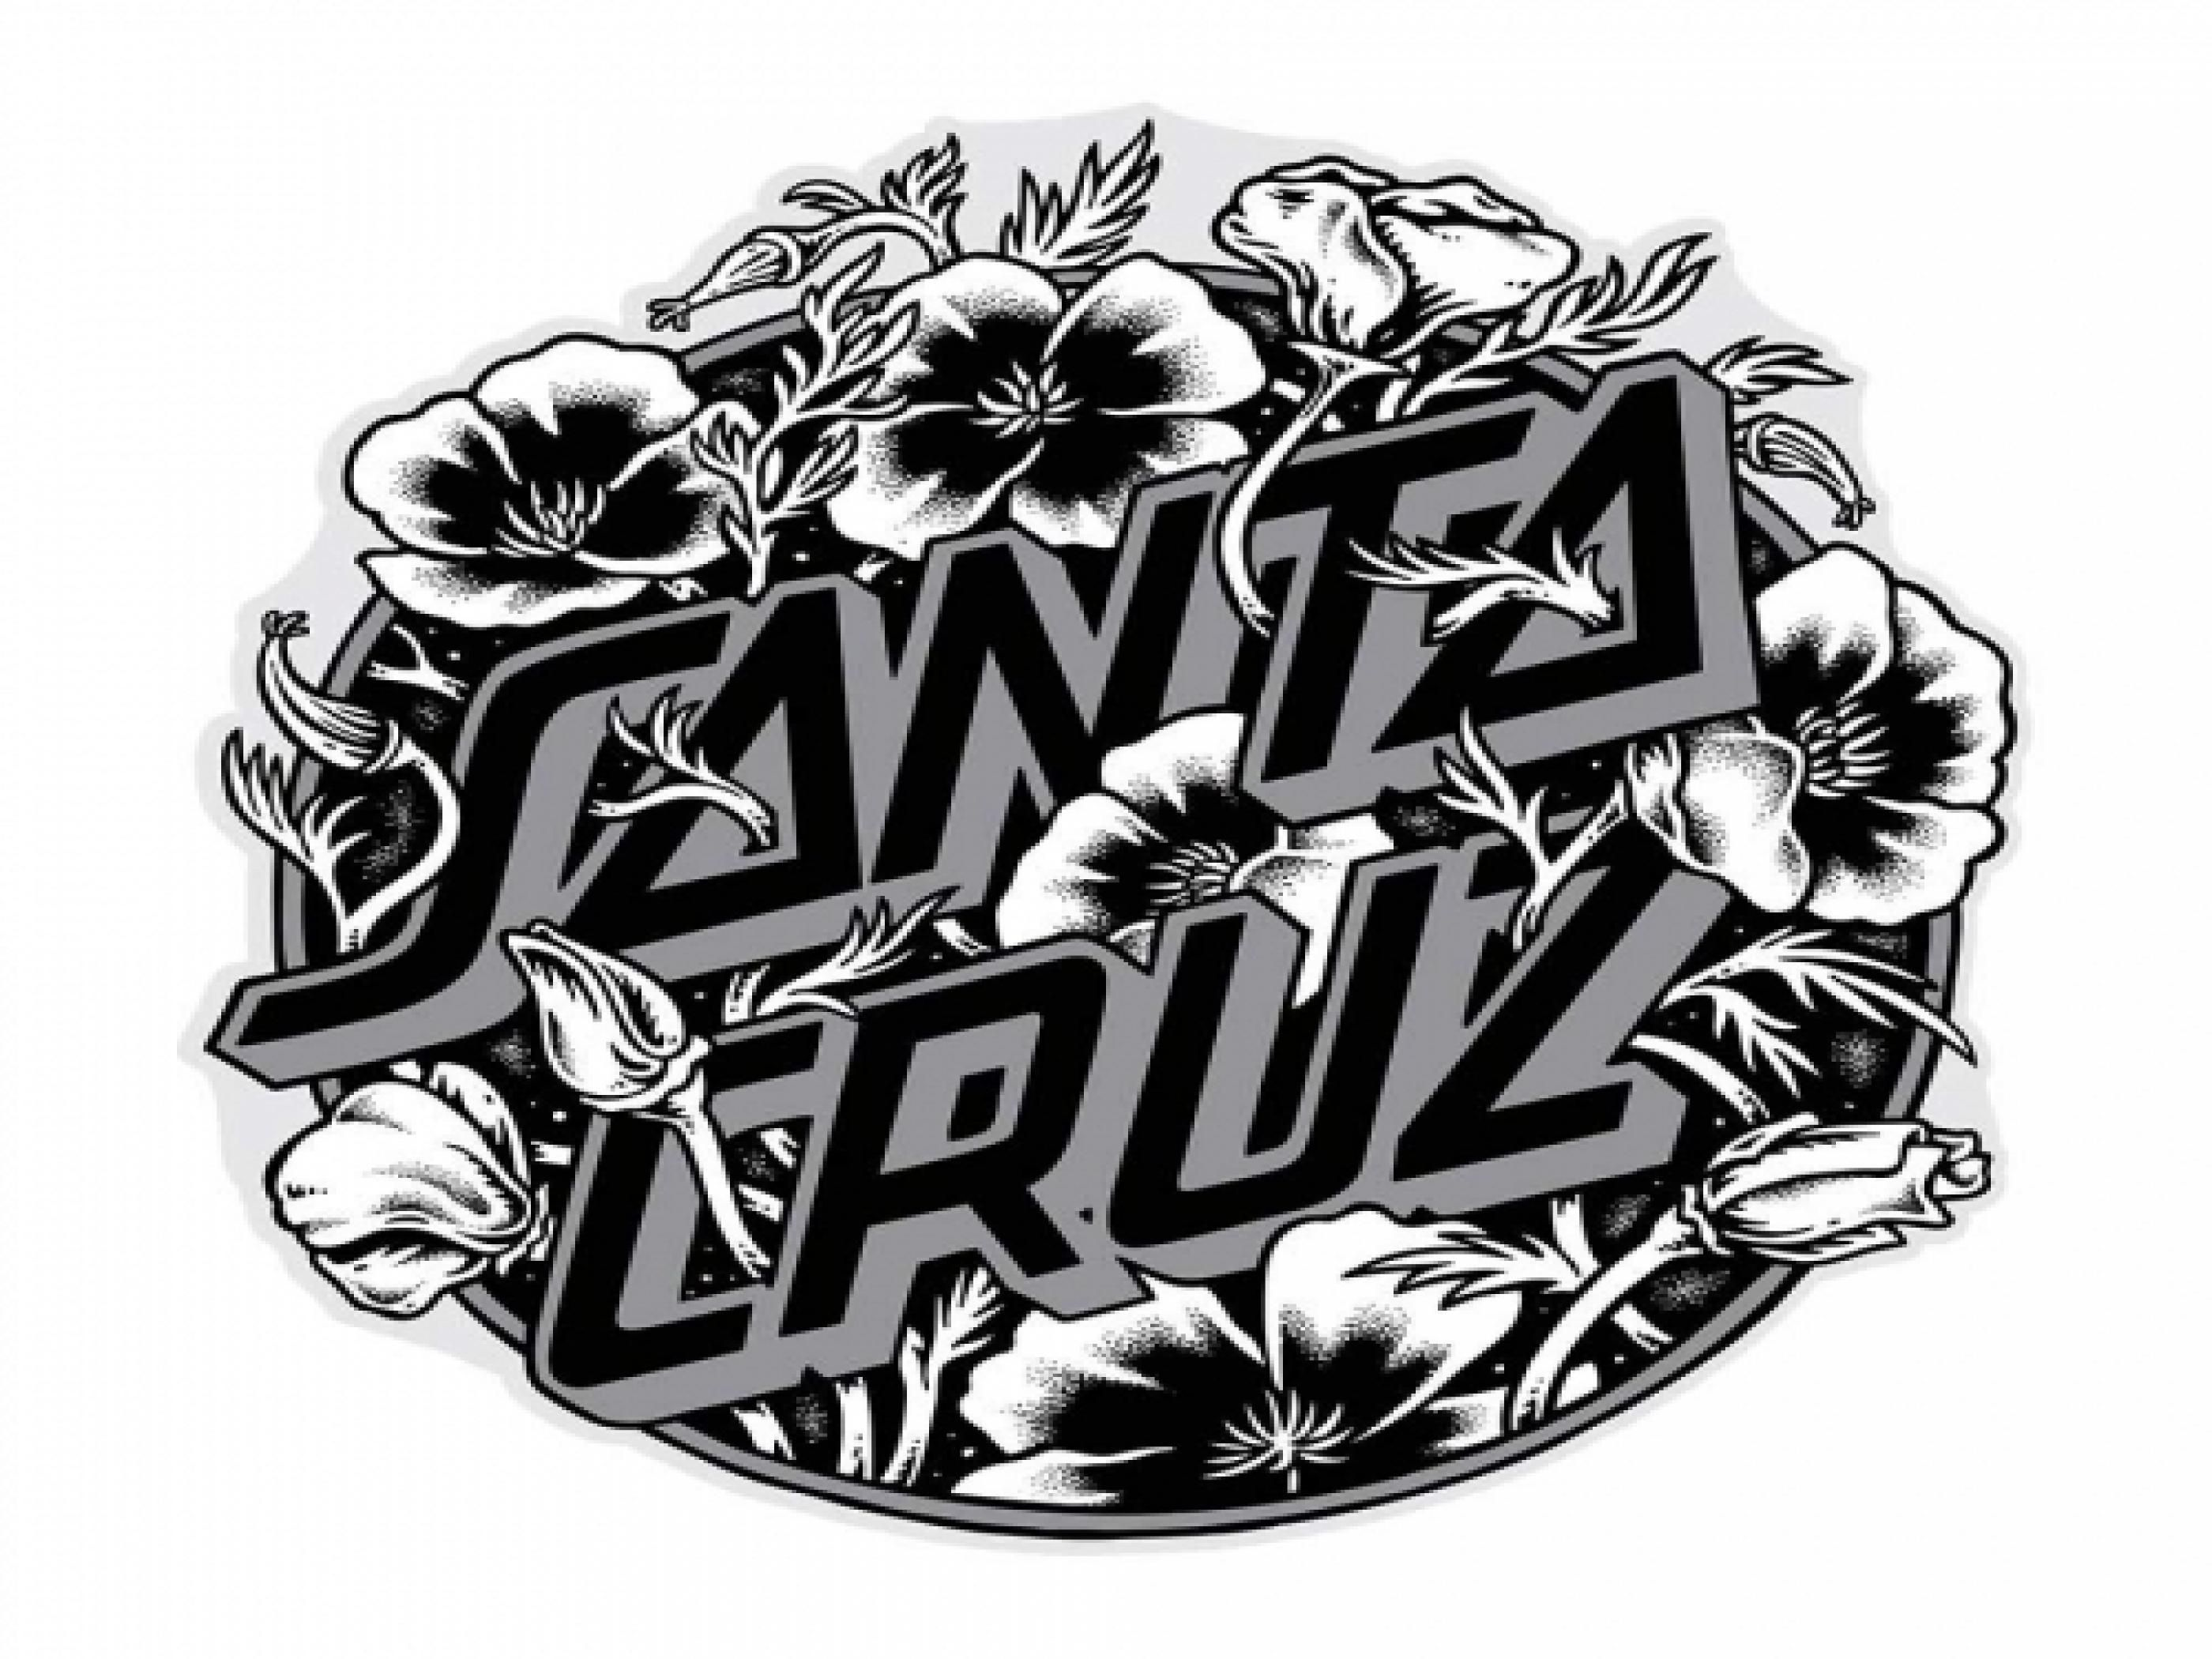 Santa Cruz Desktop Wallpapers On Wallpaperdog